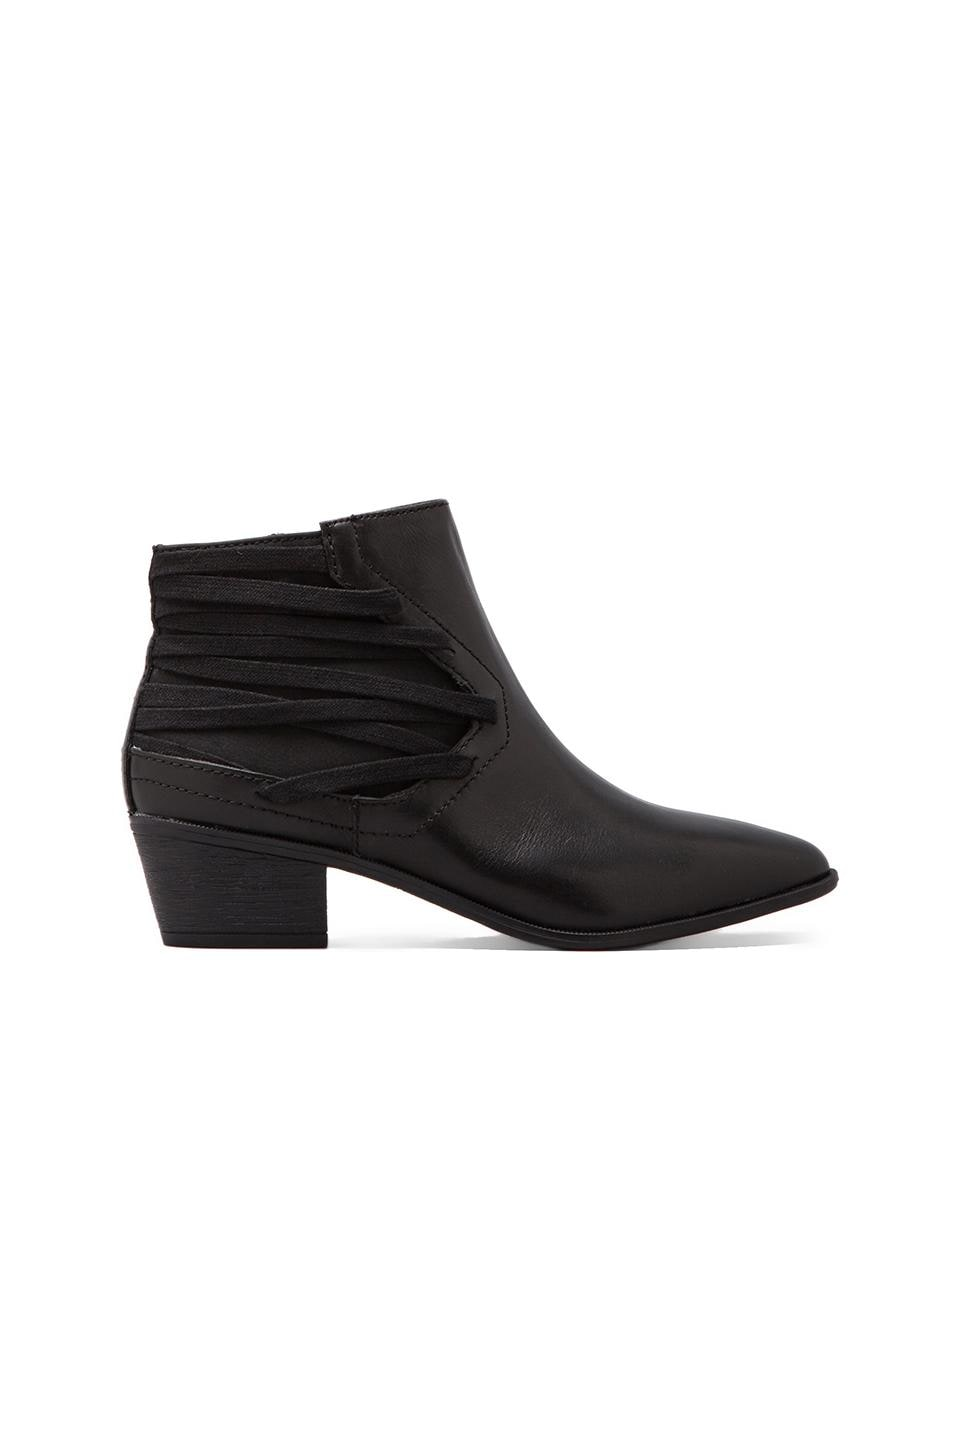 Circus by Sam Edelman Hollis Bootie in Black